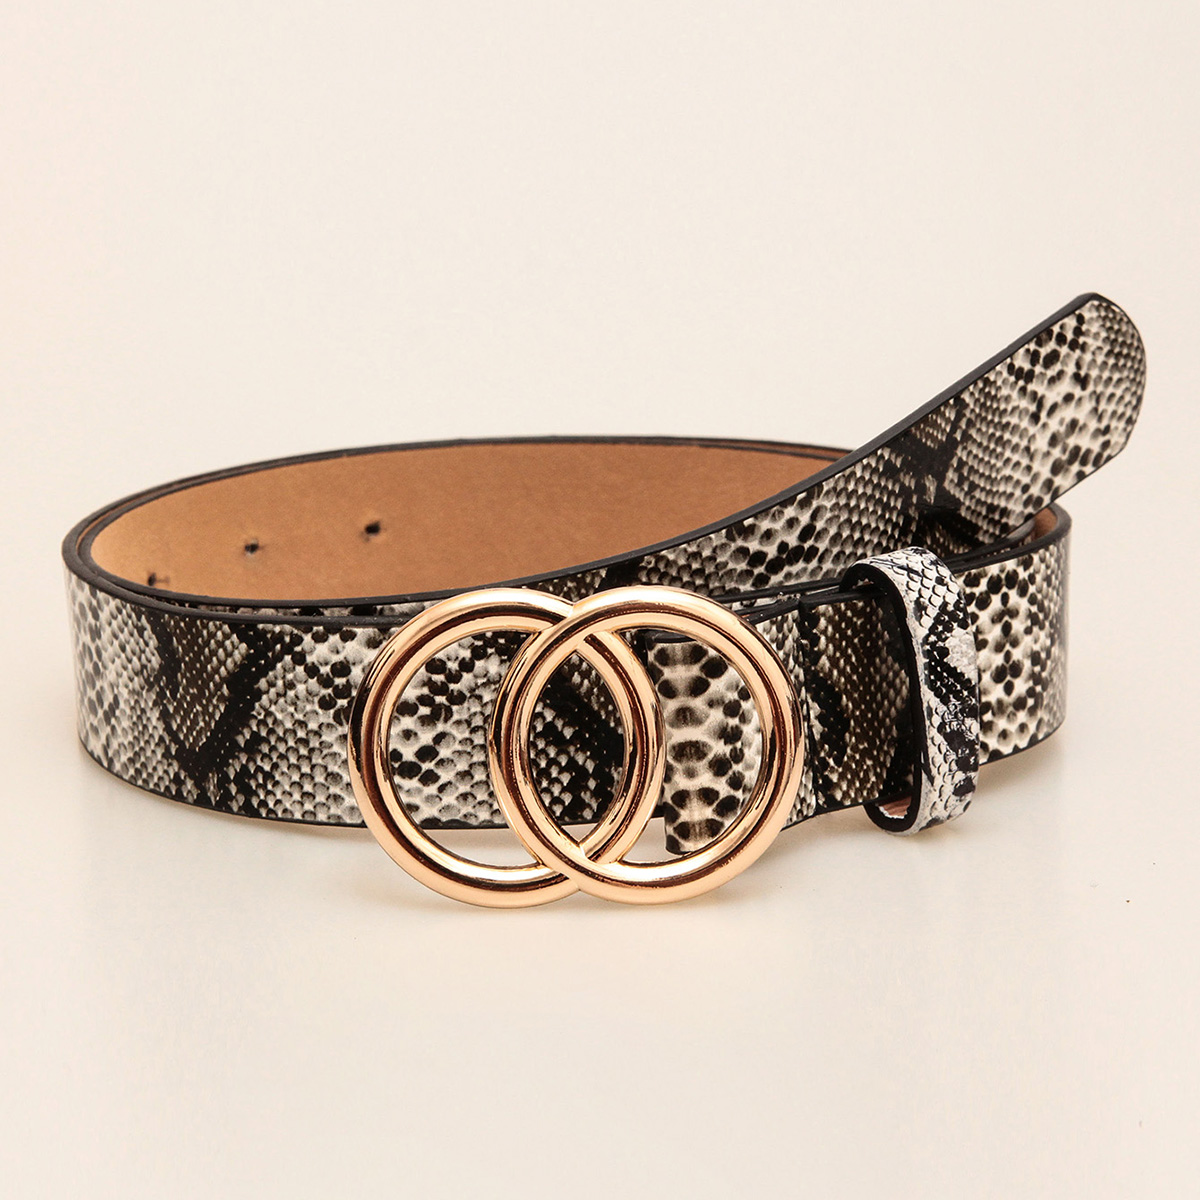 Double Round Decorative Attractive Unique Design With High Quality Belt For Women And Girls 4